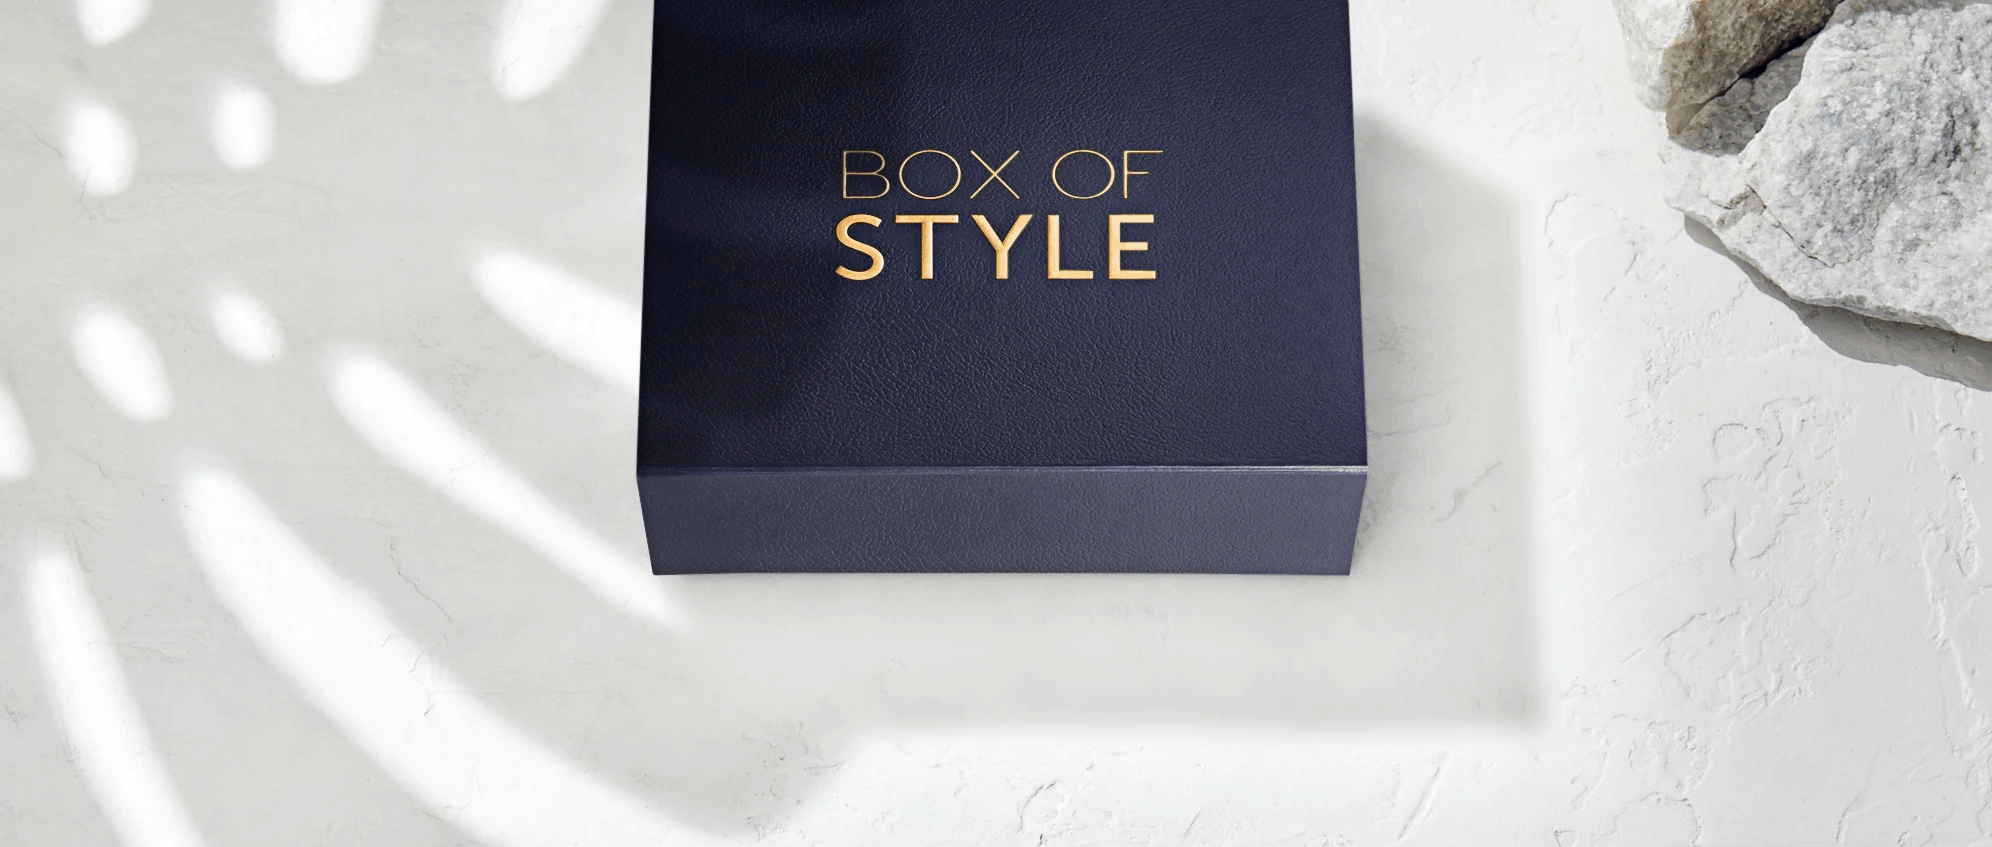 Box of Style by Rachel Zoe Labor Day Coupon: Get $30 Off!